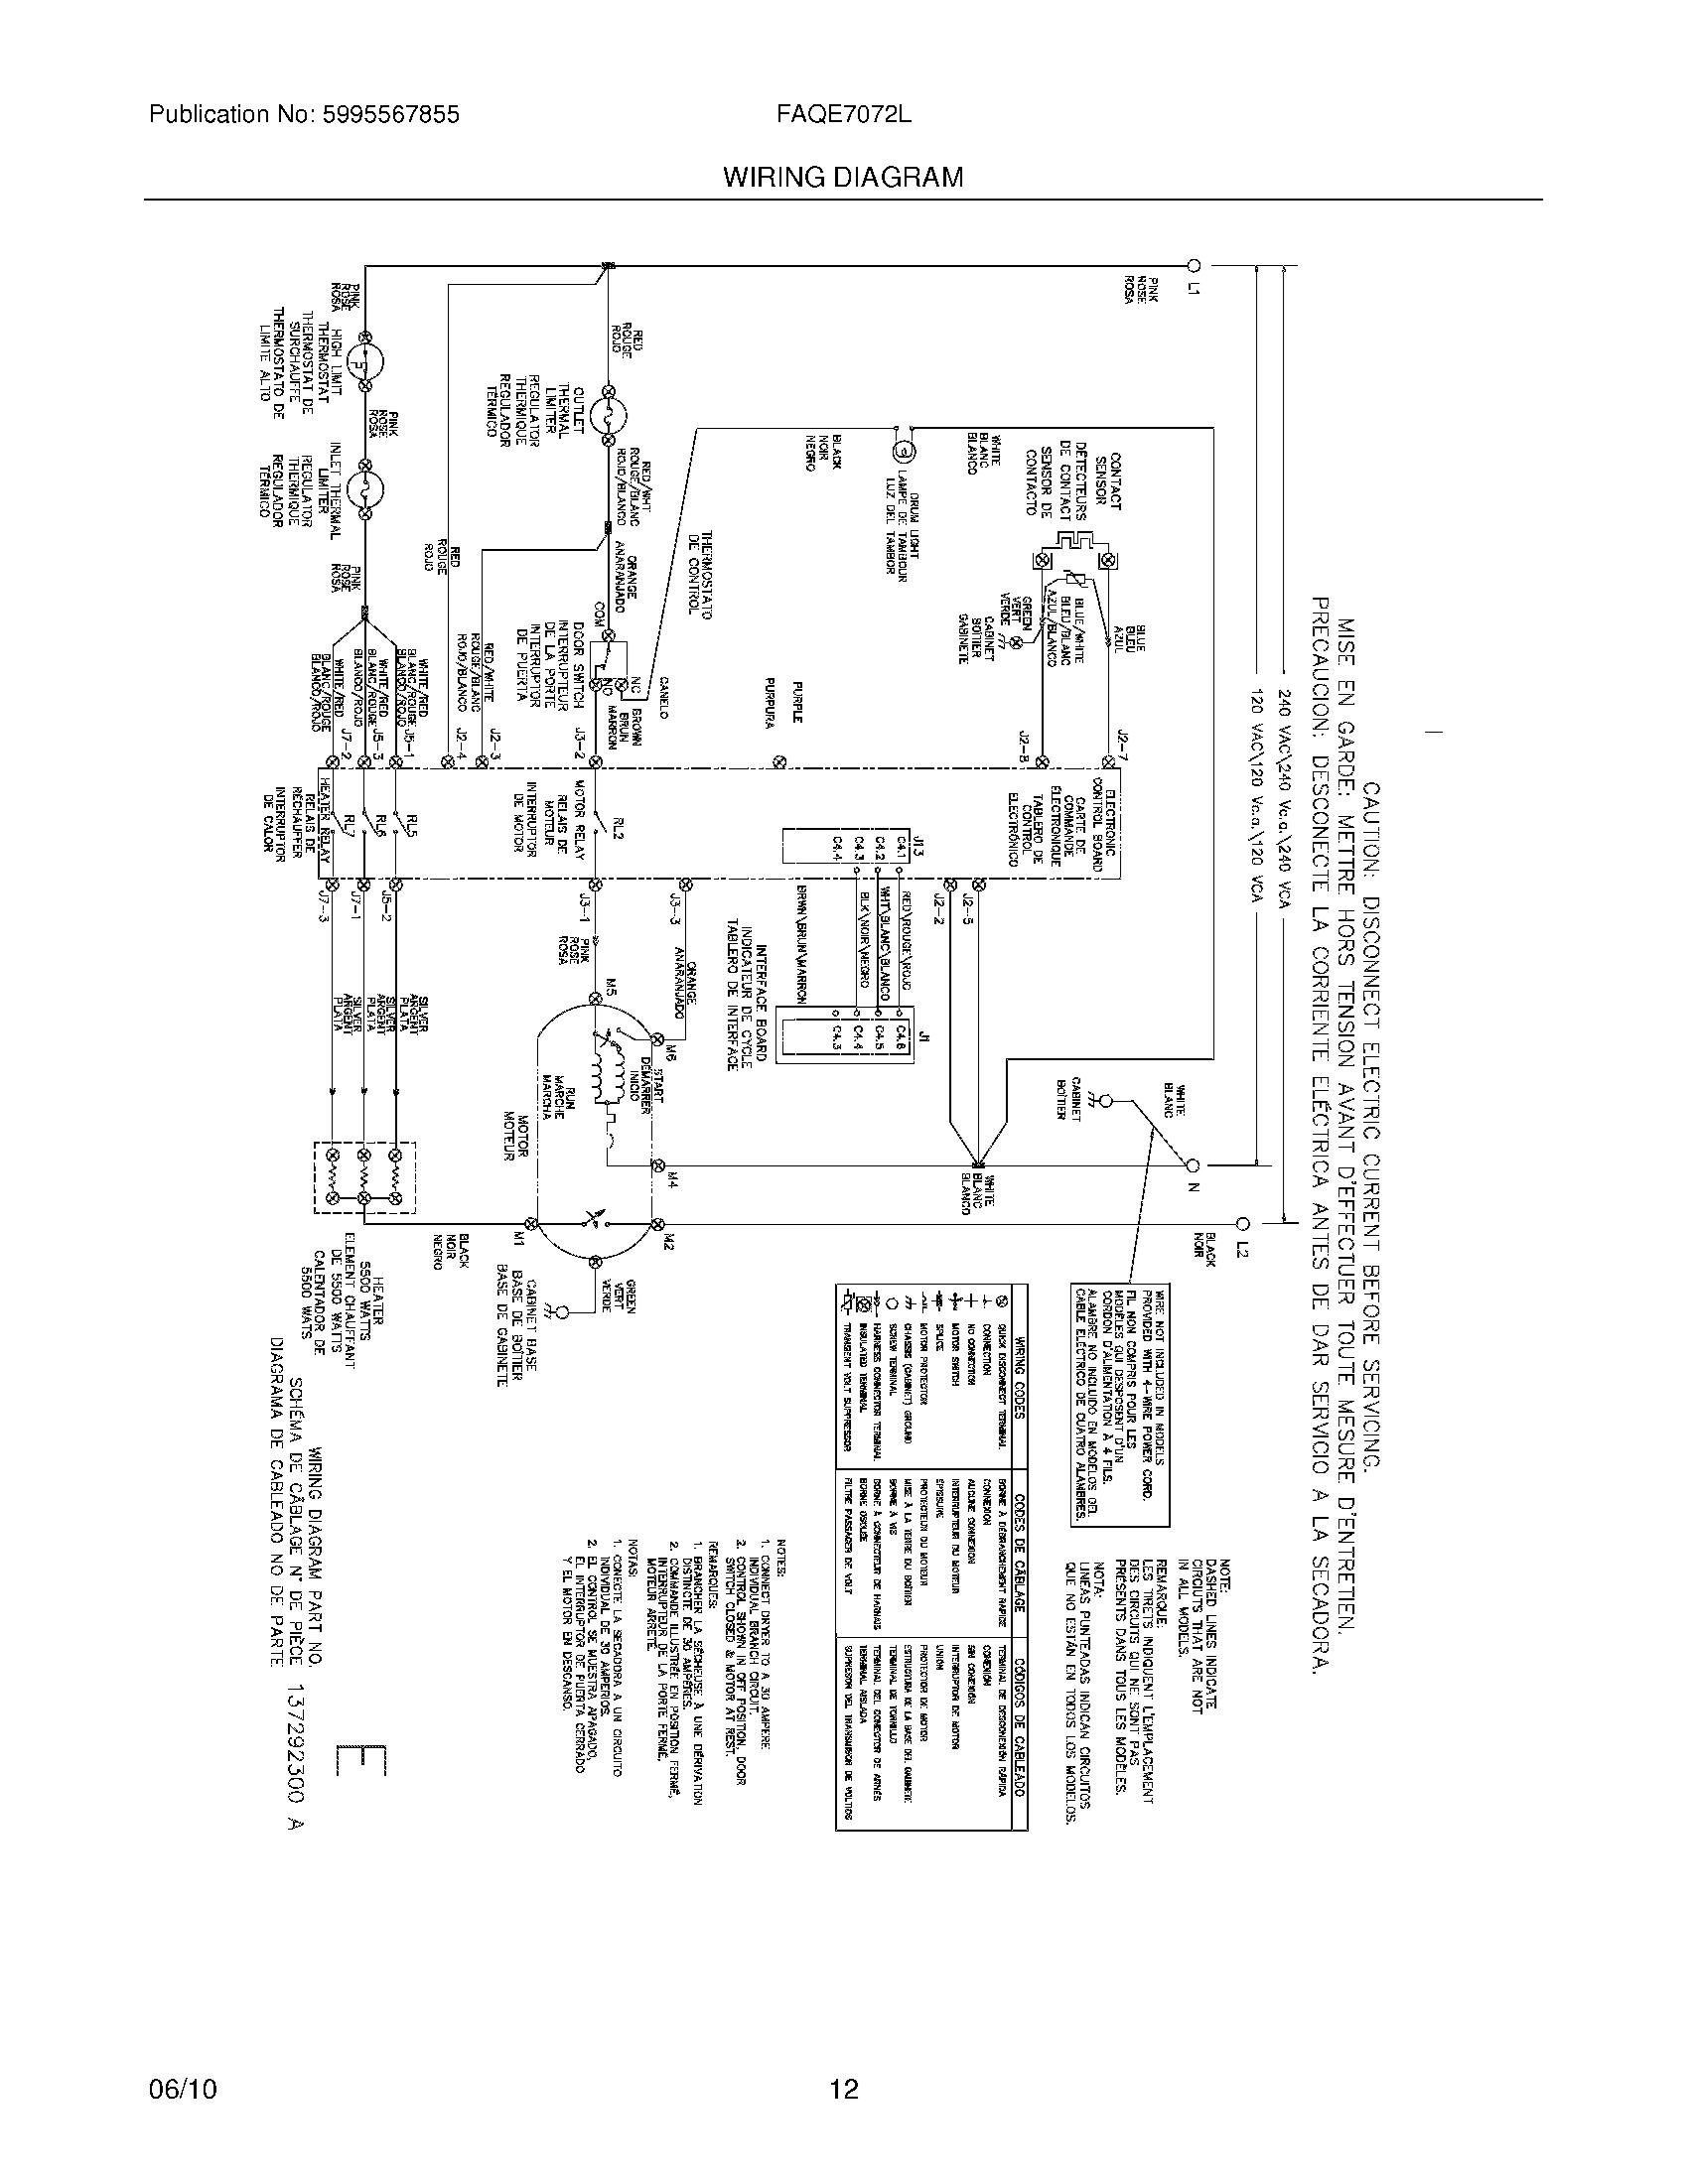 Frigidaire Affinity Dryer Wiring Diagram Electrical Diagrams Washing Machine Range Model Fef355a House Lg Washer Pump